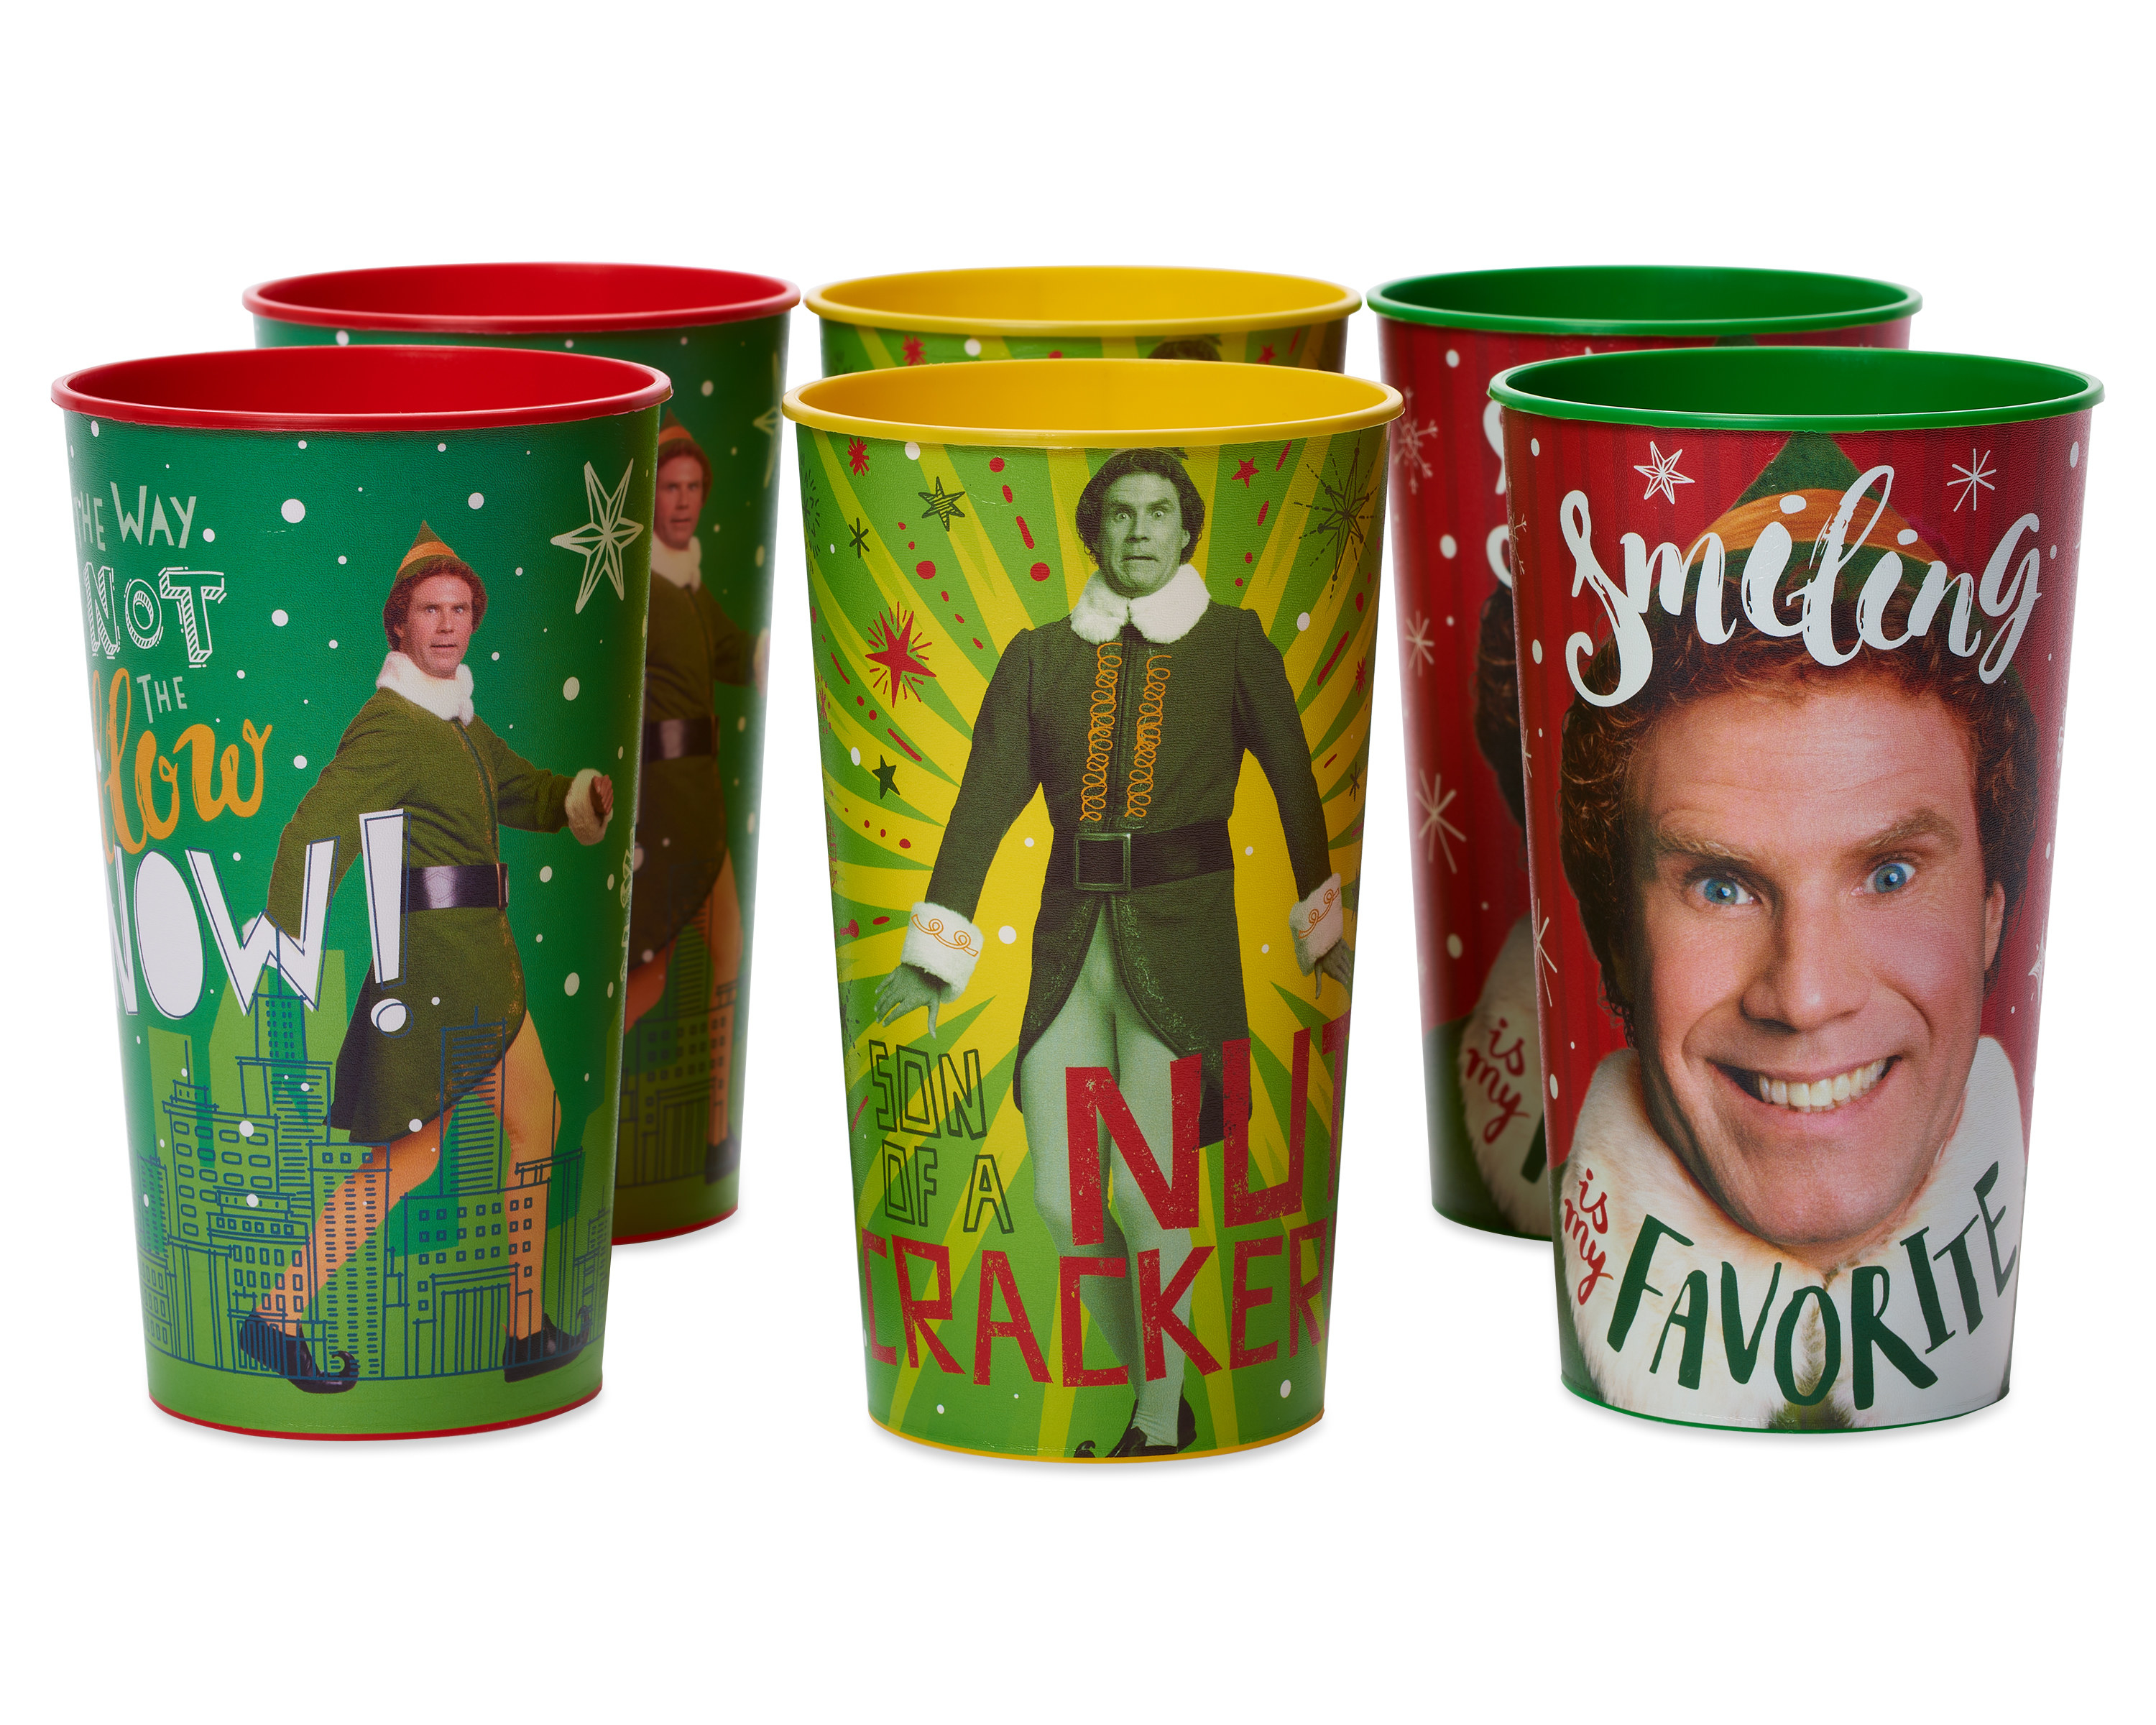 Six of the cups in three different styles featuring scenes from the movie Elf